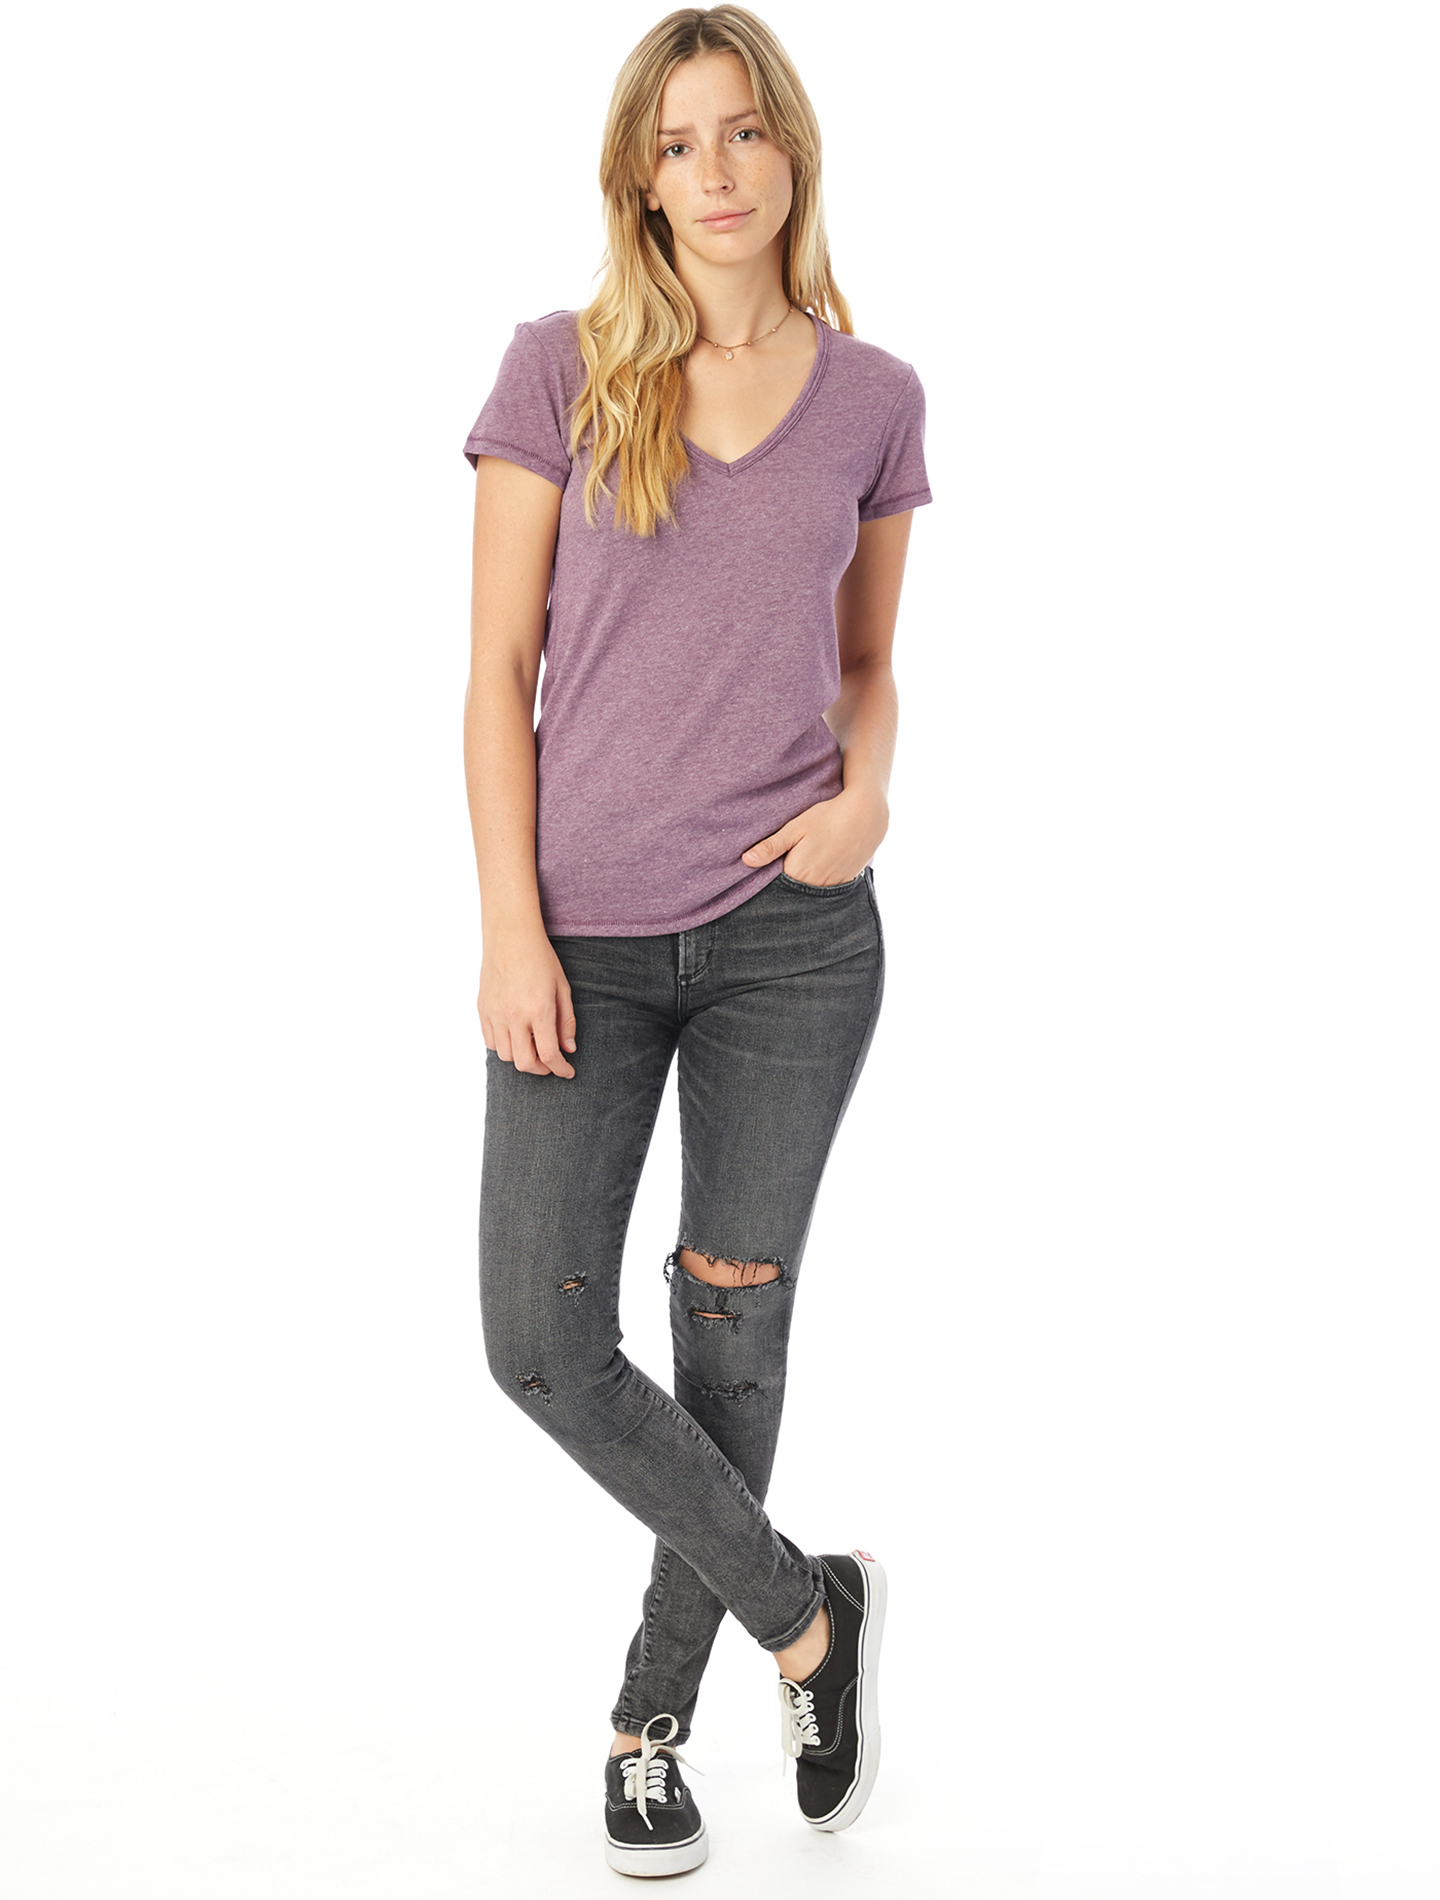 Womens//Ladies Value Fitted V-Neck Short Sleeve Casual T-Shirt BC3905